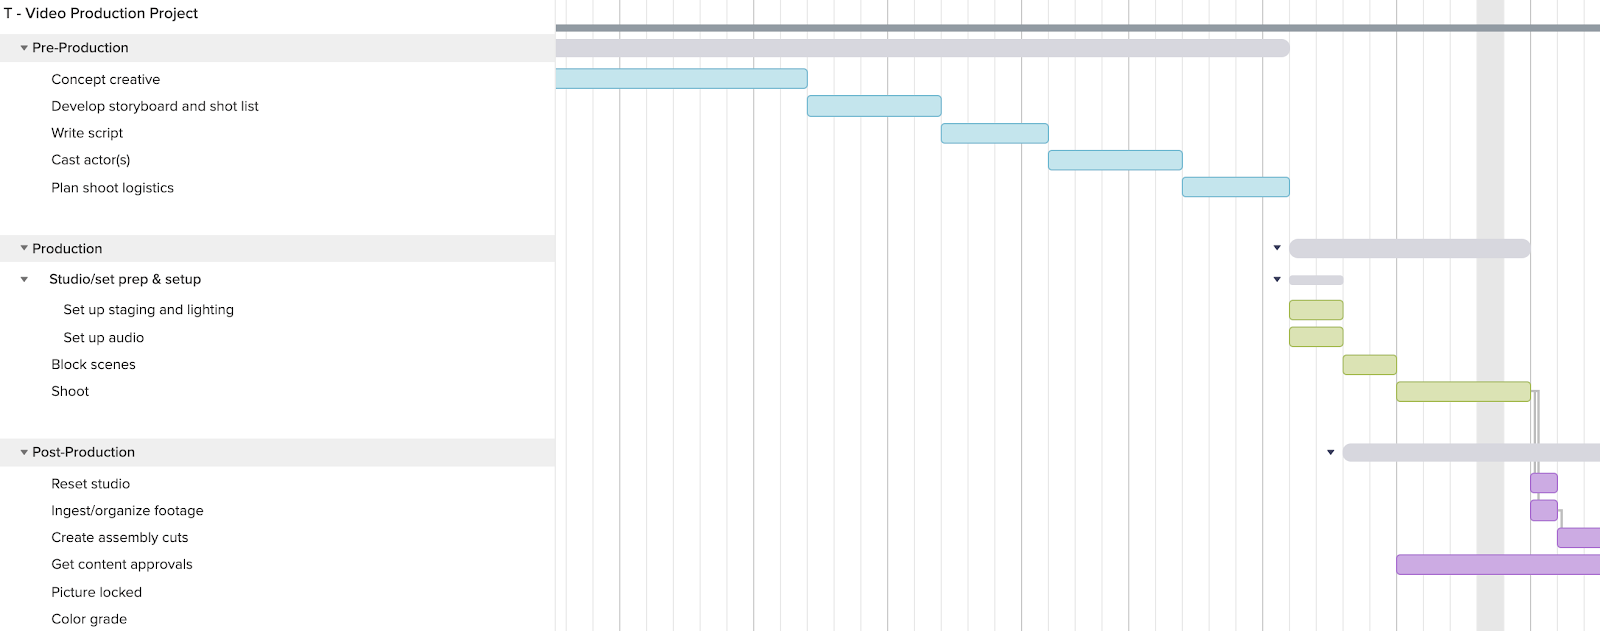 video production schedule gantt chart template